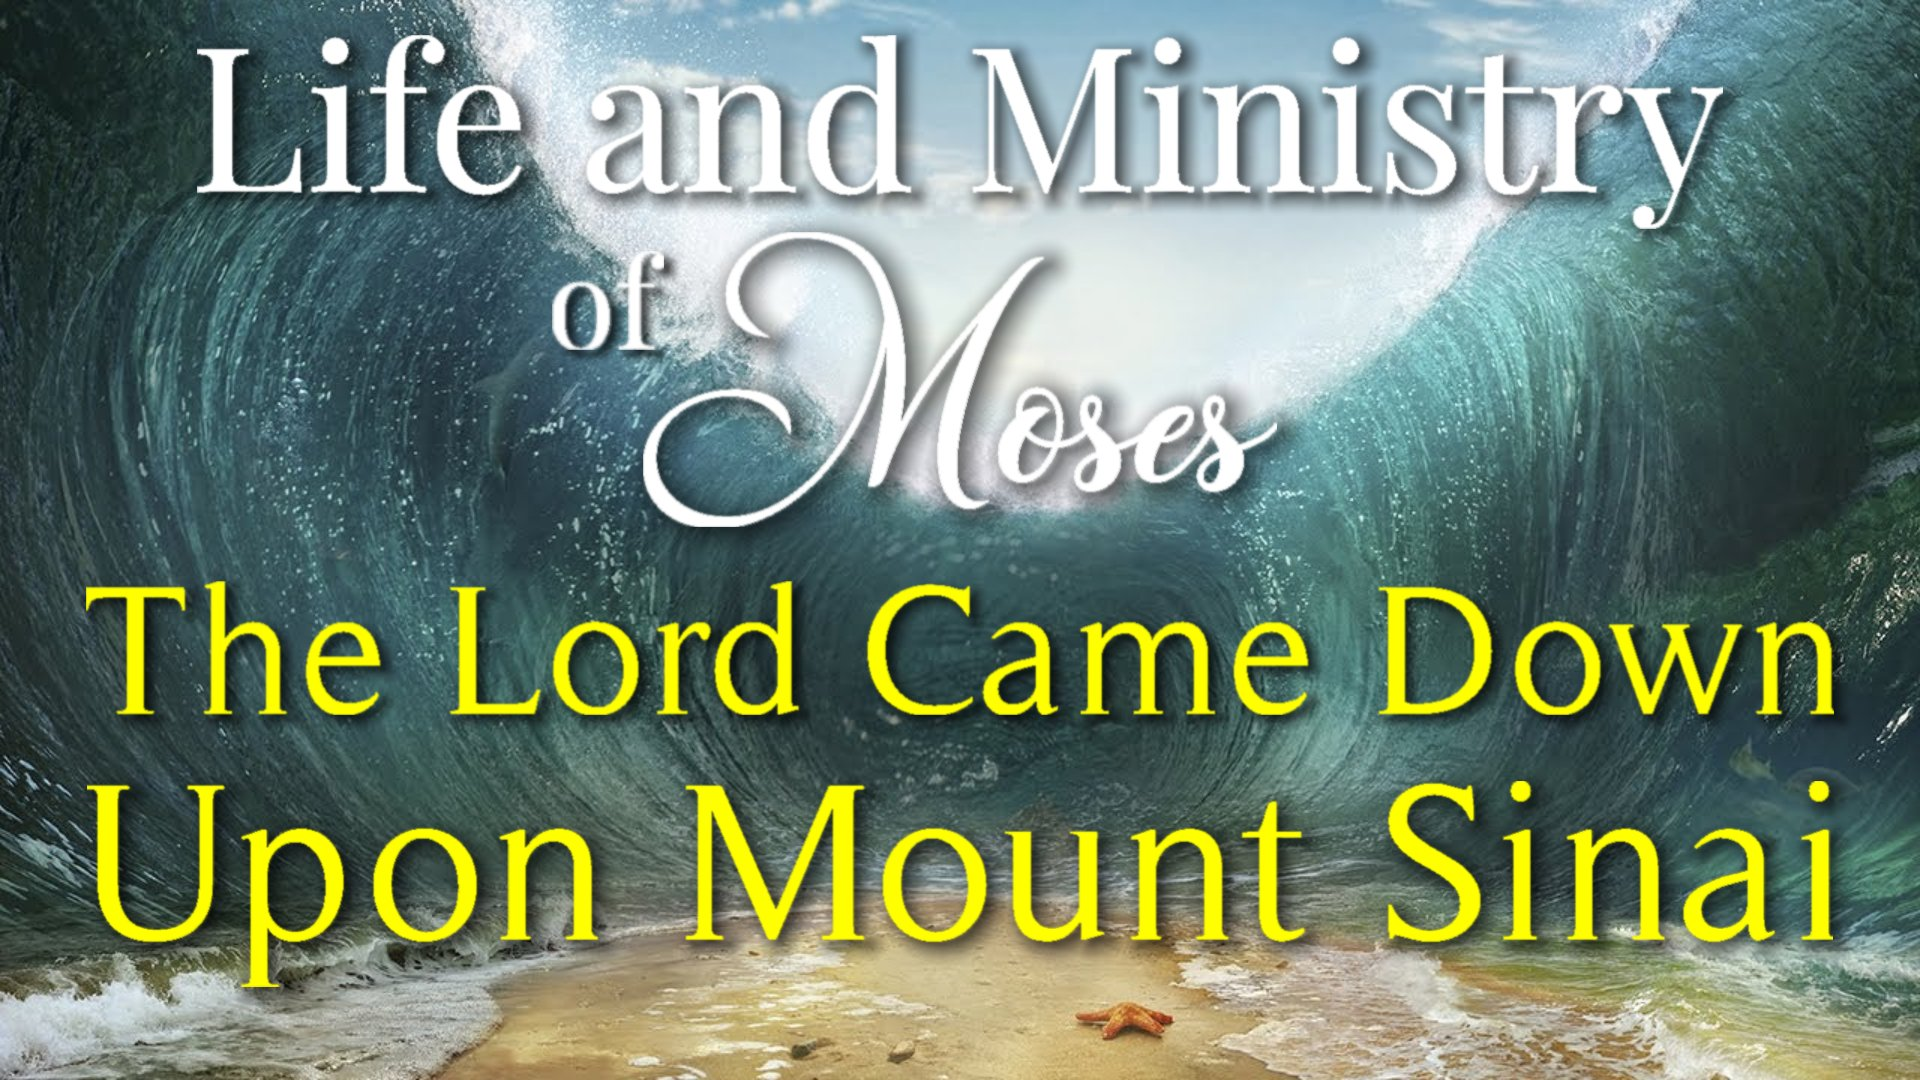 21 The Lord Came Down Upon Mount Sinai